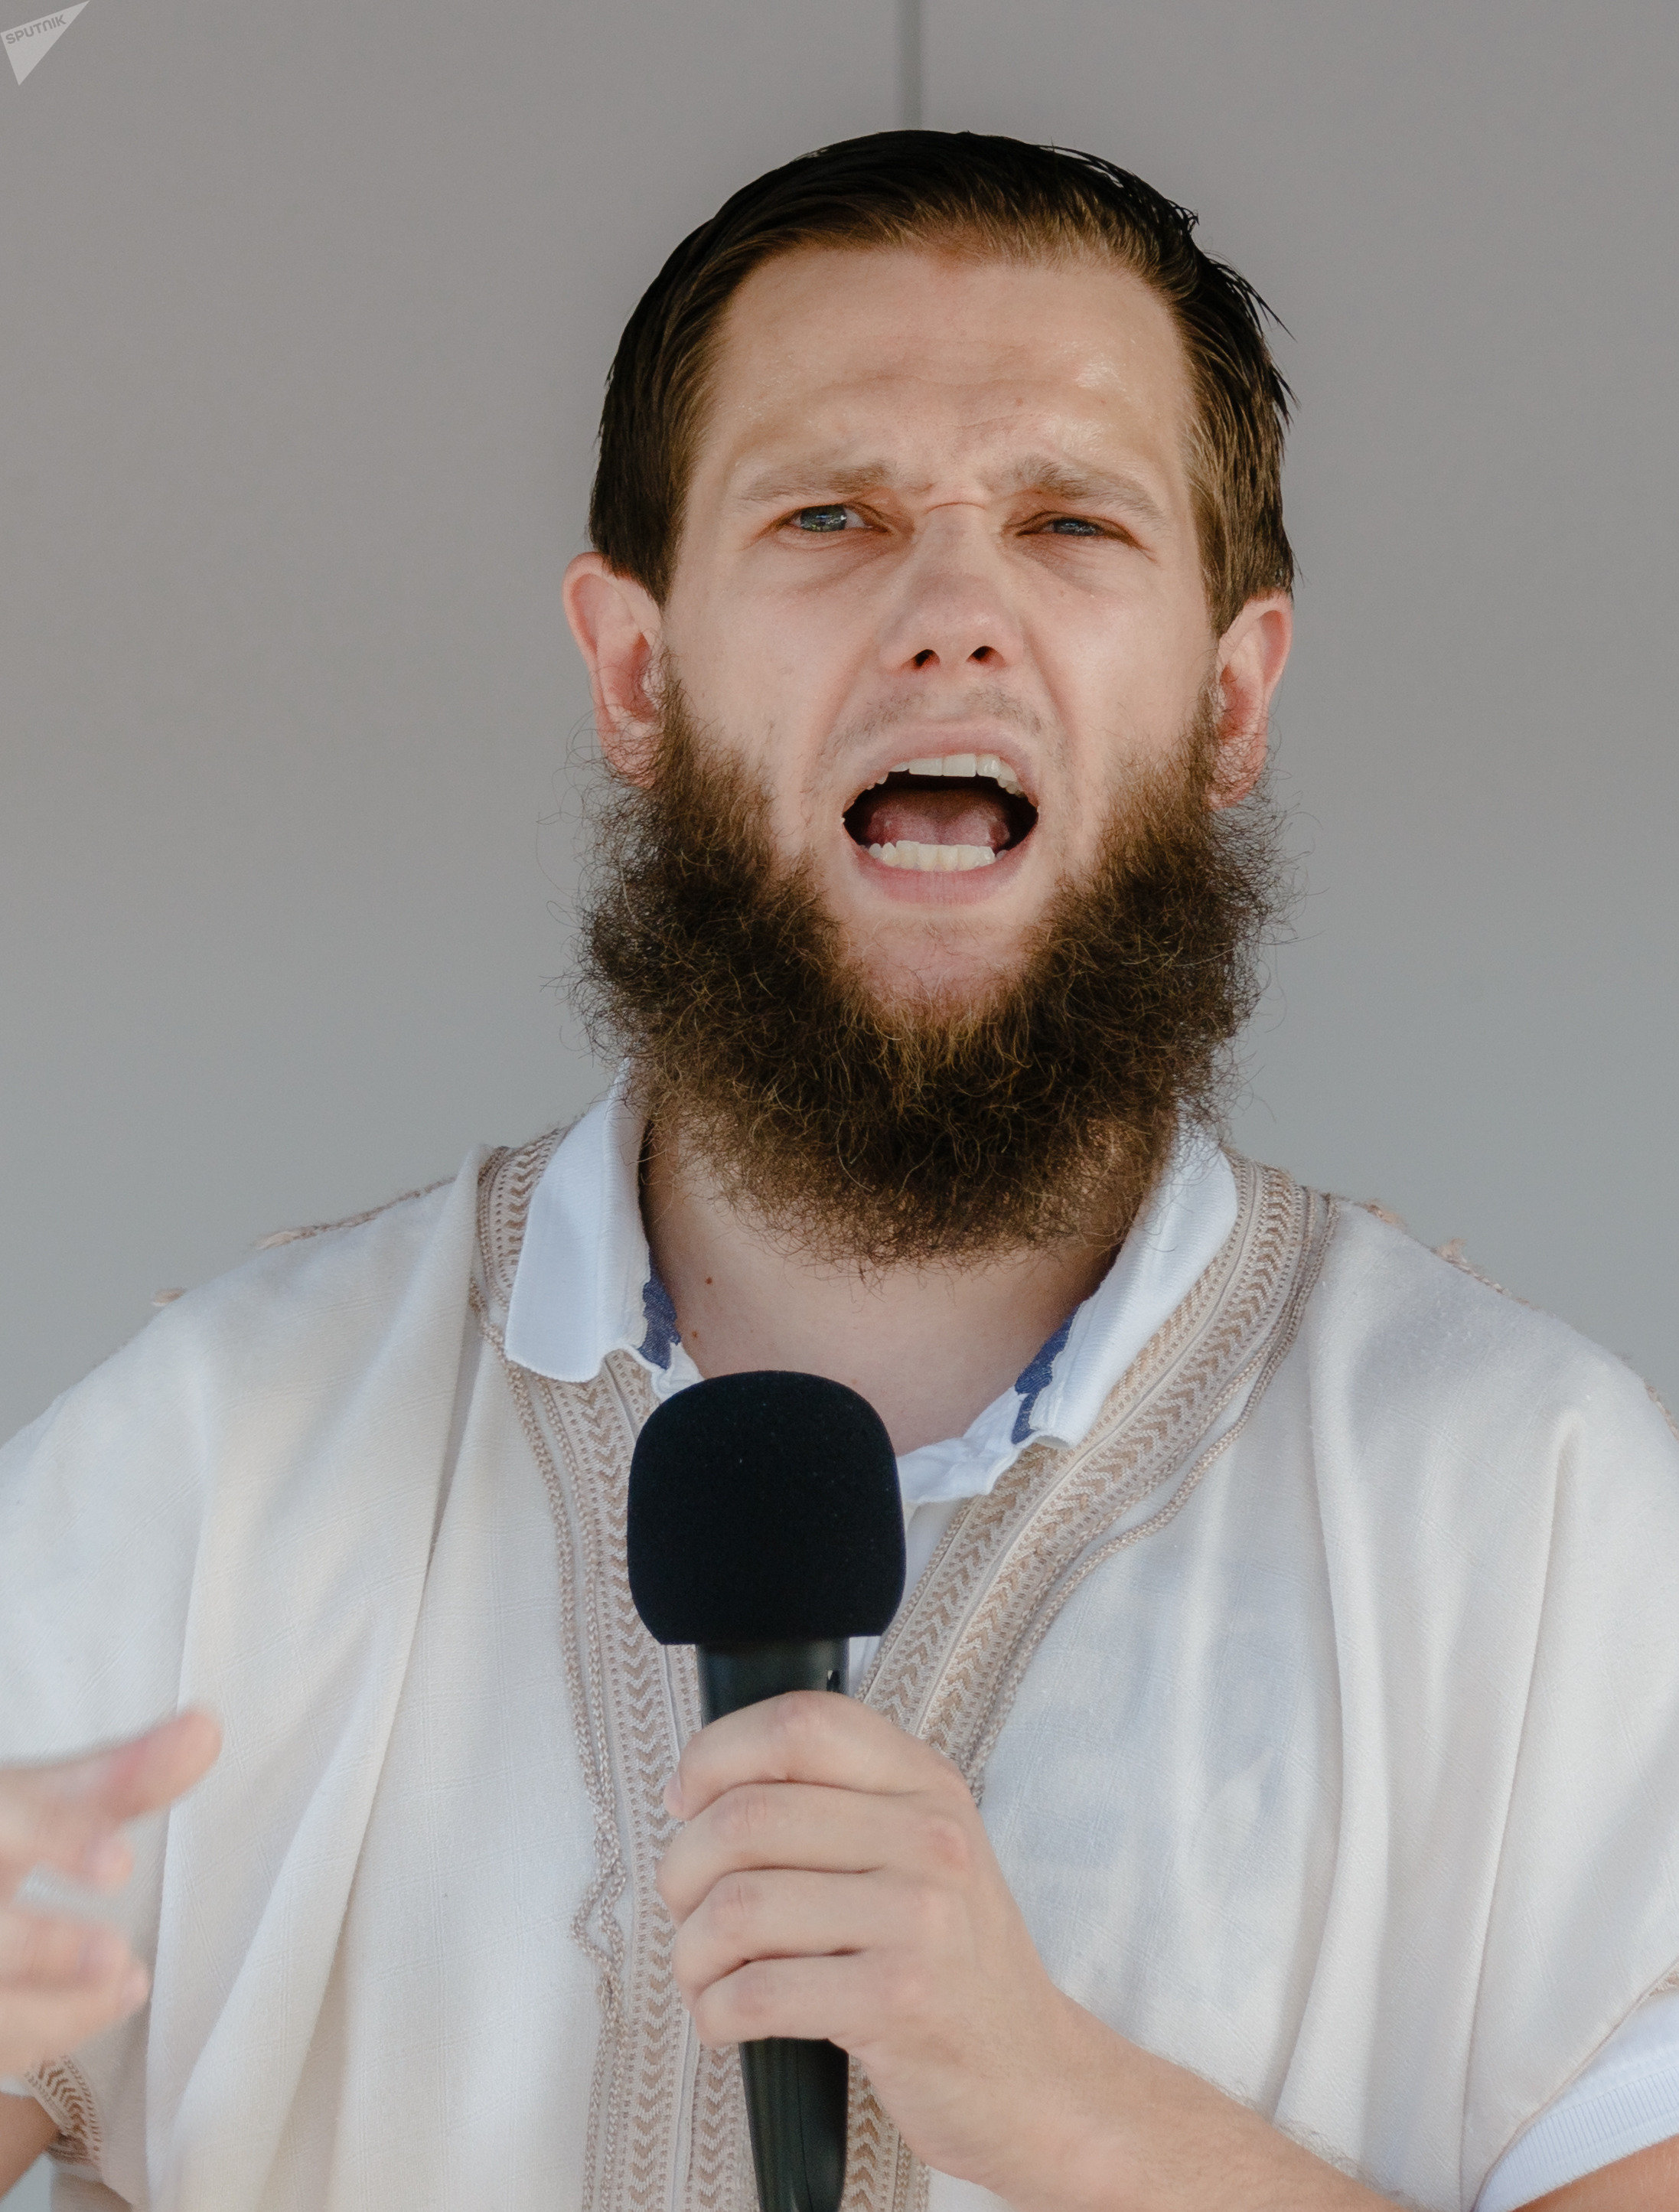 Islamist preacher Sven Lau aka Abu Adam talks during a rally on July 19, 2014 in Hamburg, northern Germany.